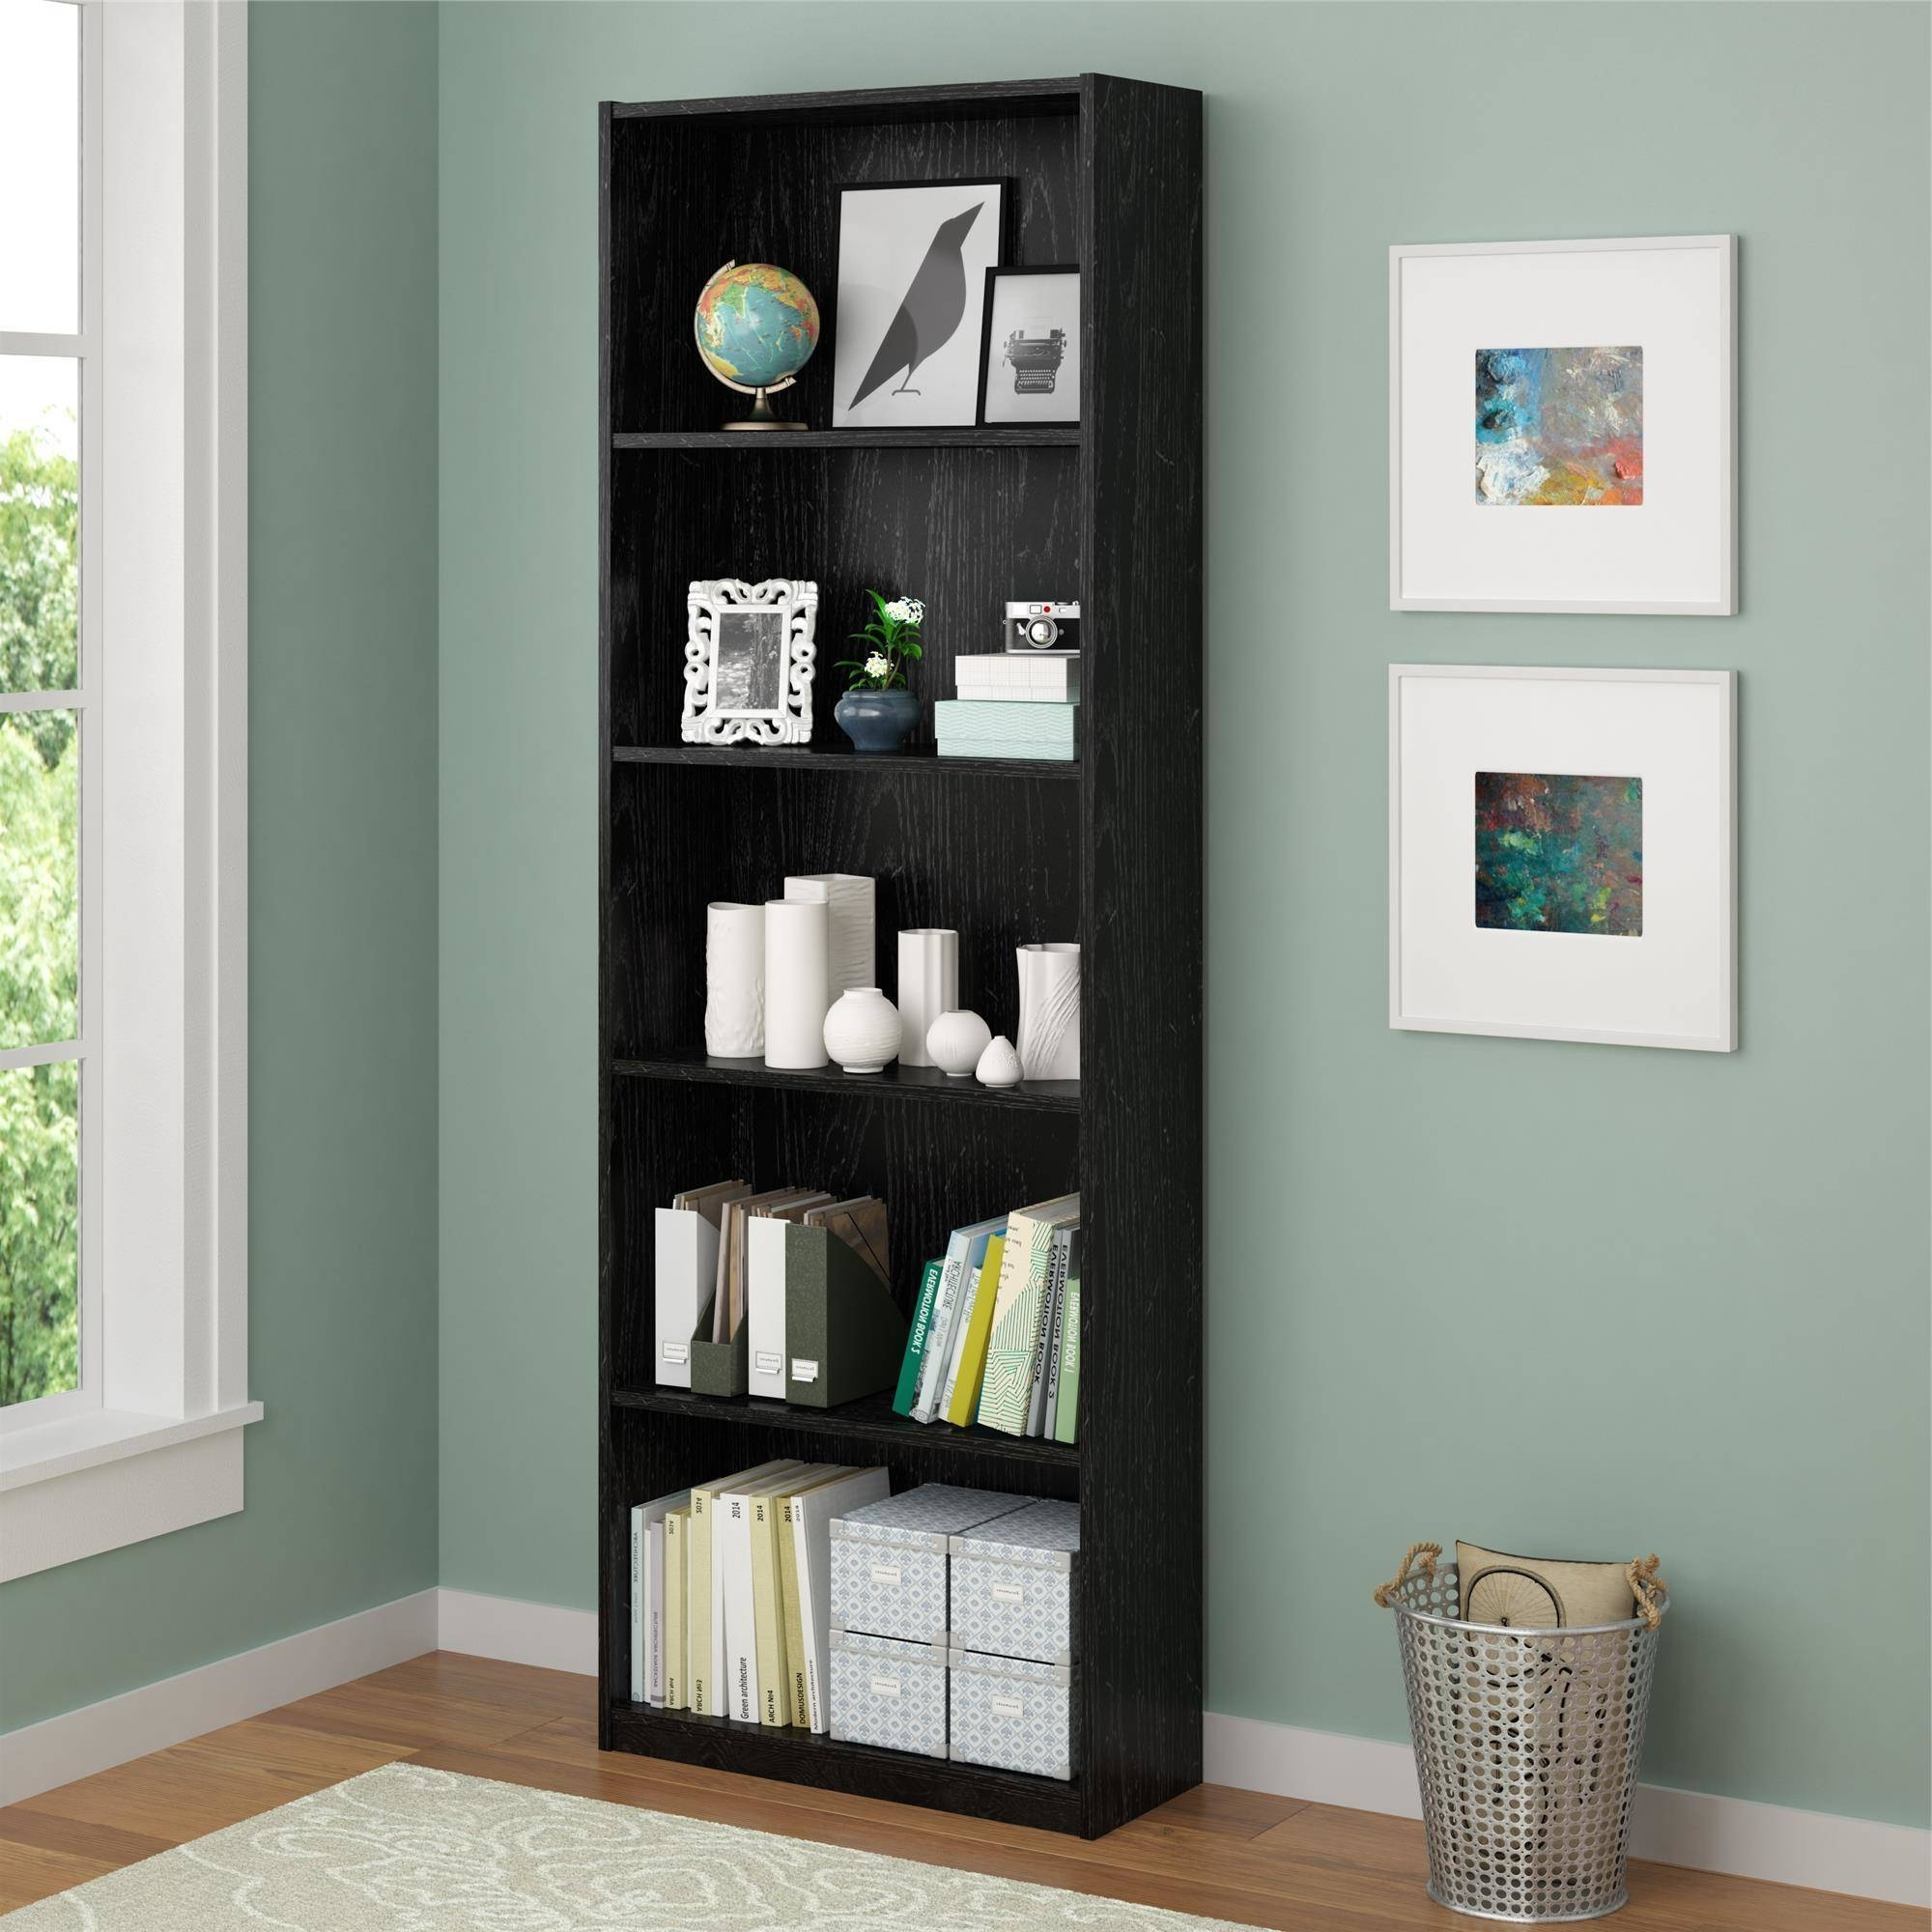 Ameriwood 5 Shelf Bookcases, Set Of 2 (mix And Match) – Walmart Throughout Best And Newest Black Bookcases (View 11 of 15)